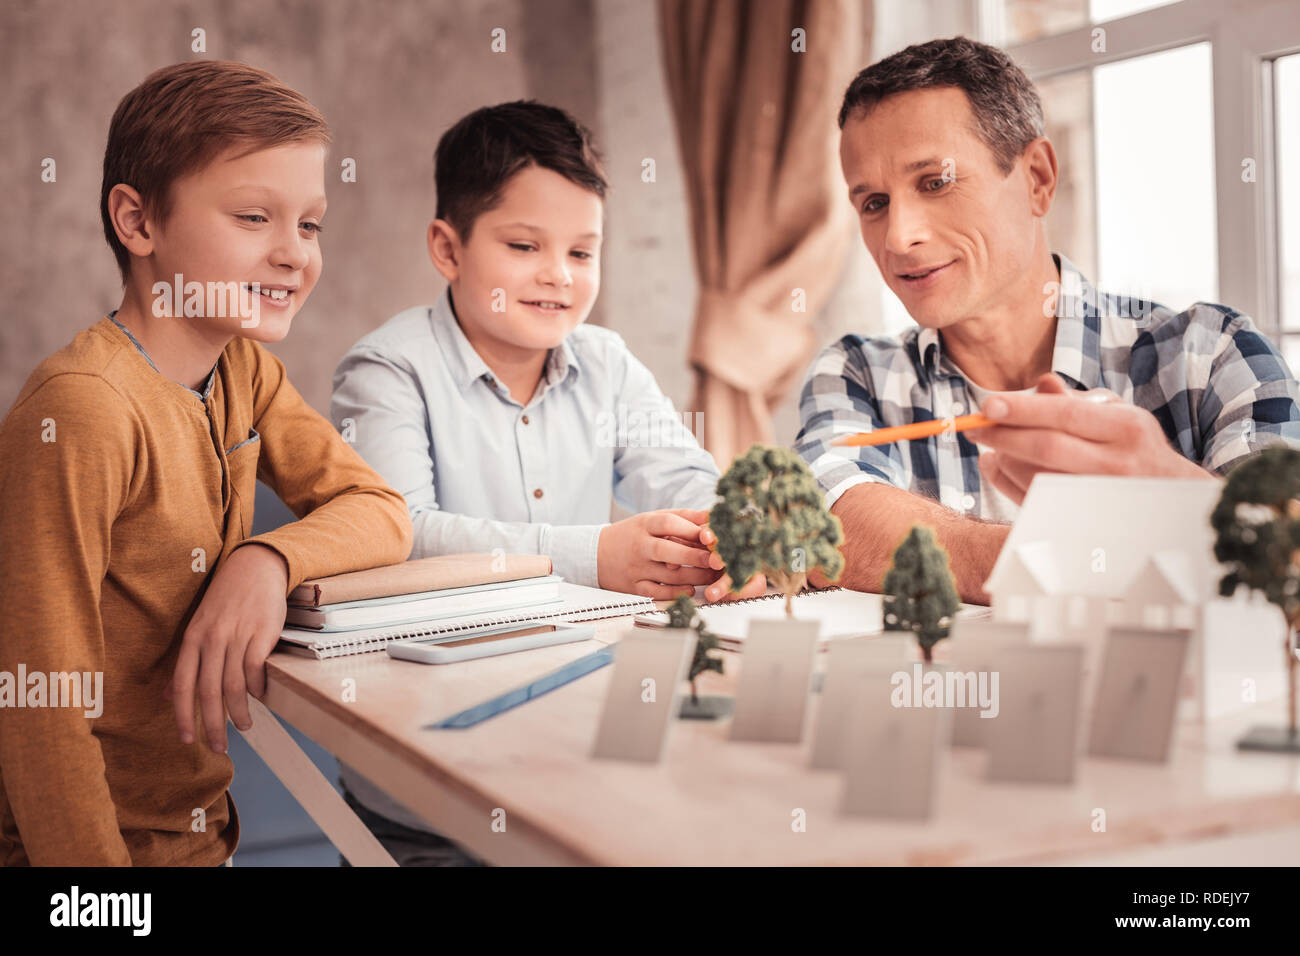 Smiling foster father feeling cheerful spending time with children - Stock Image